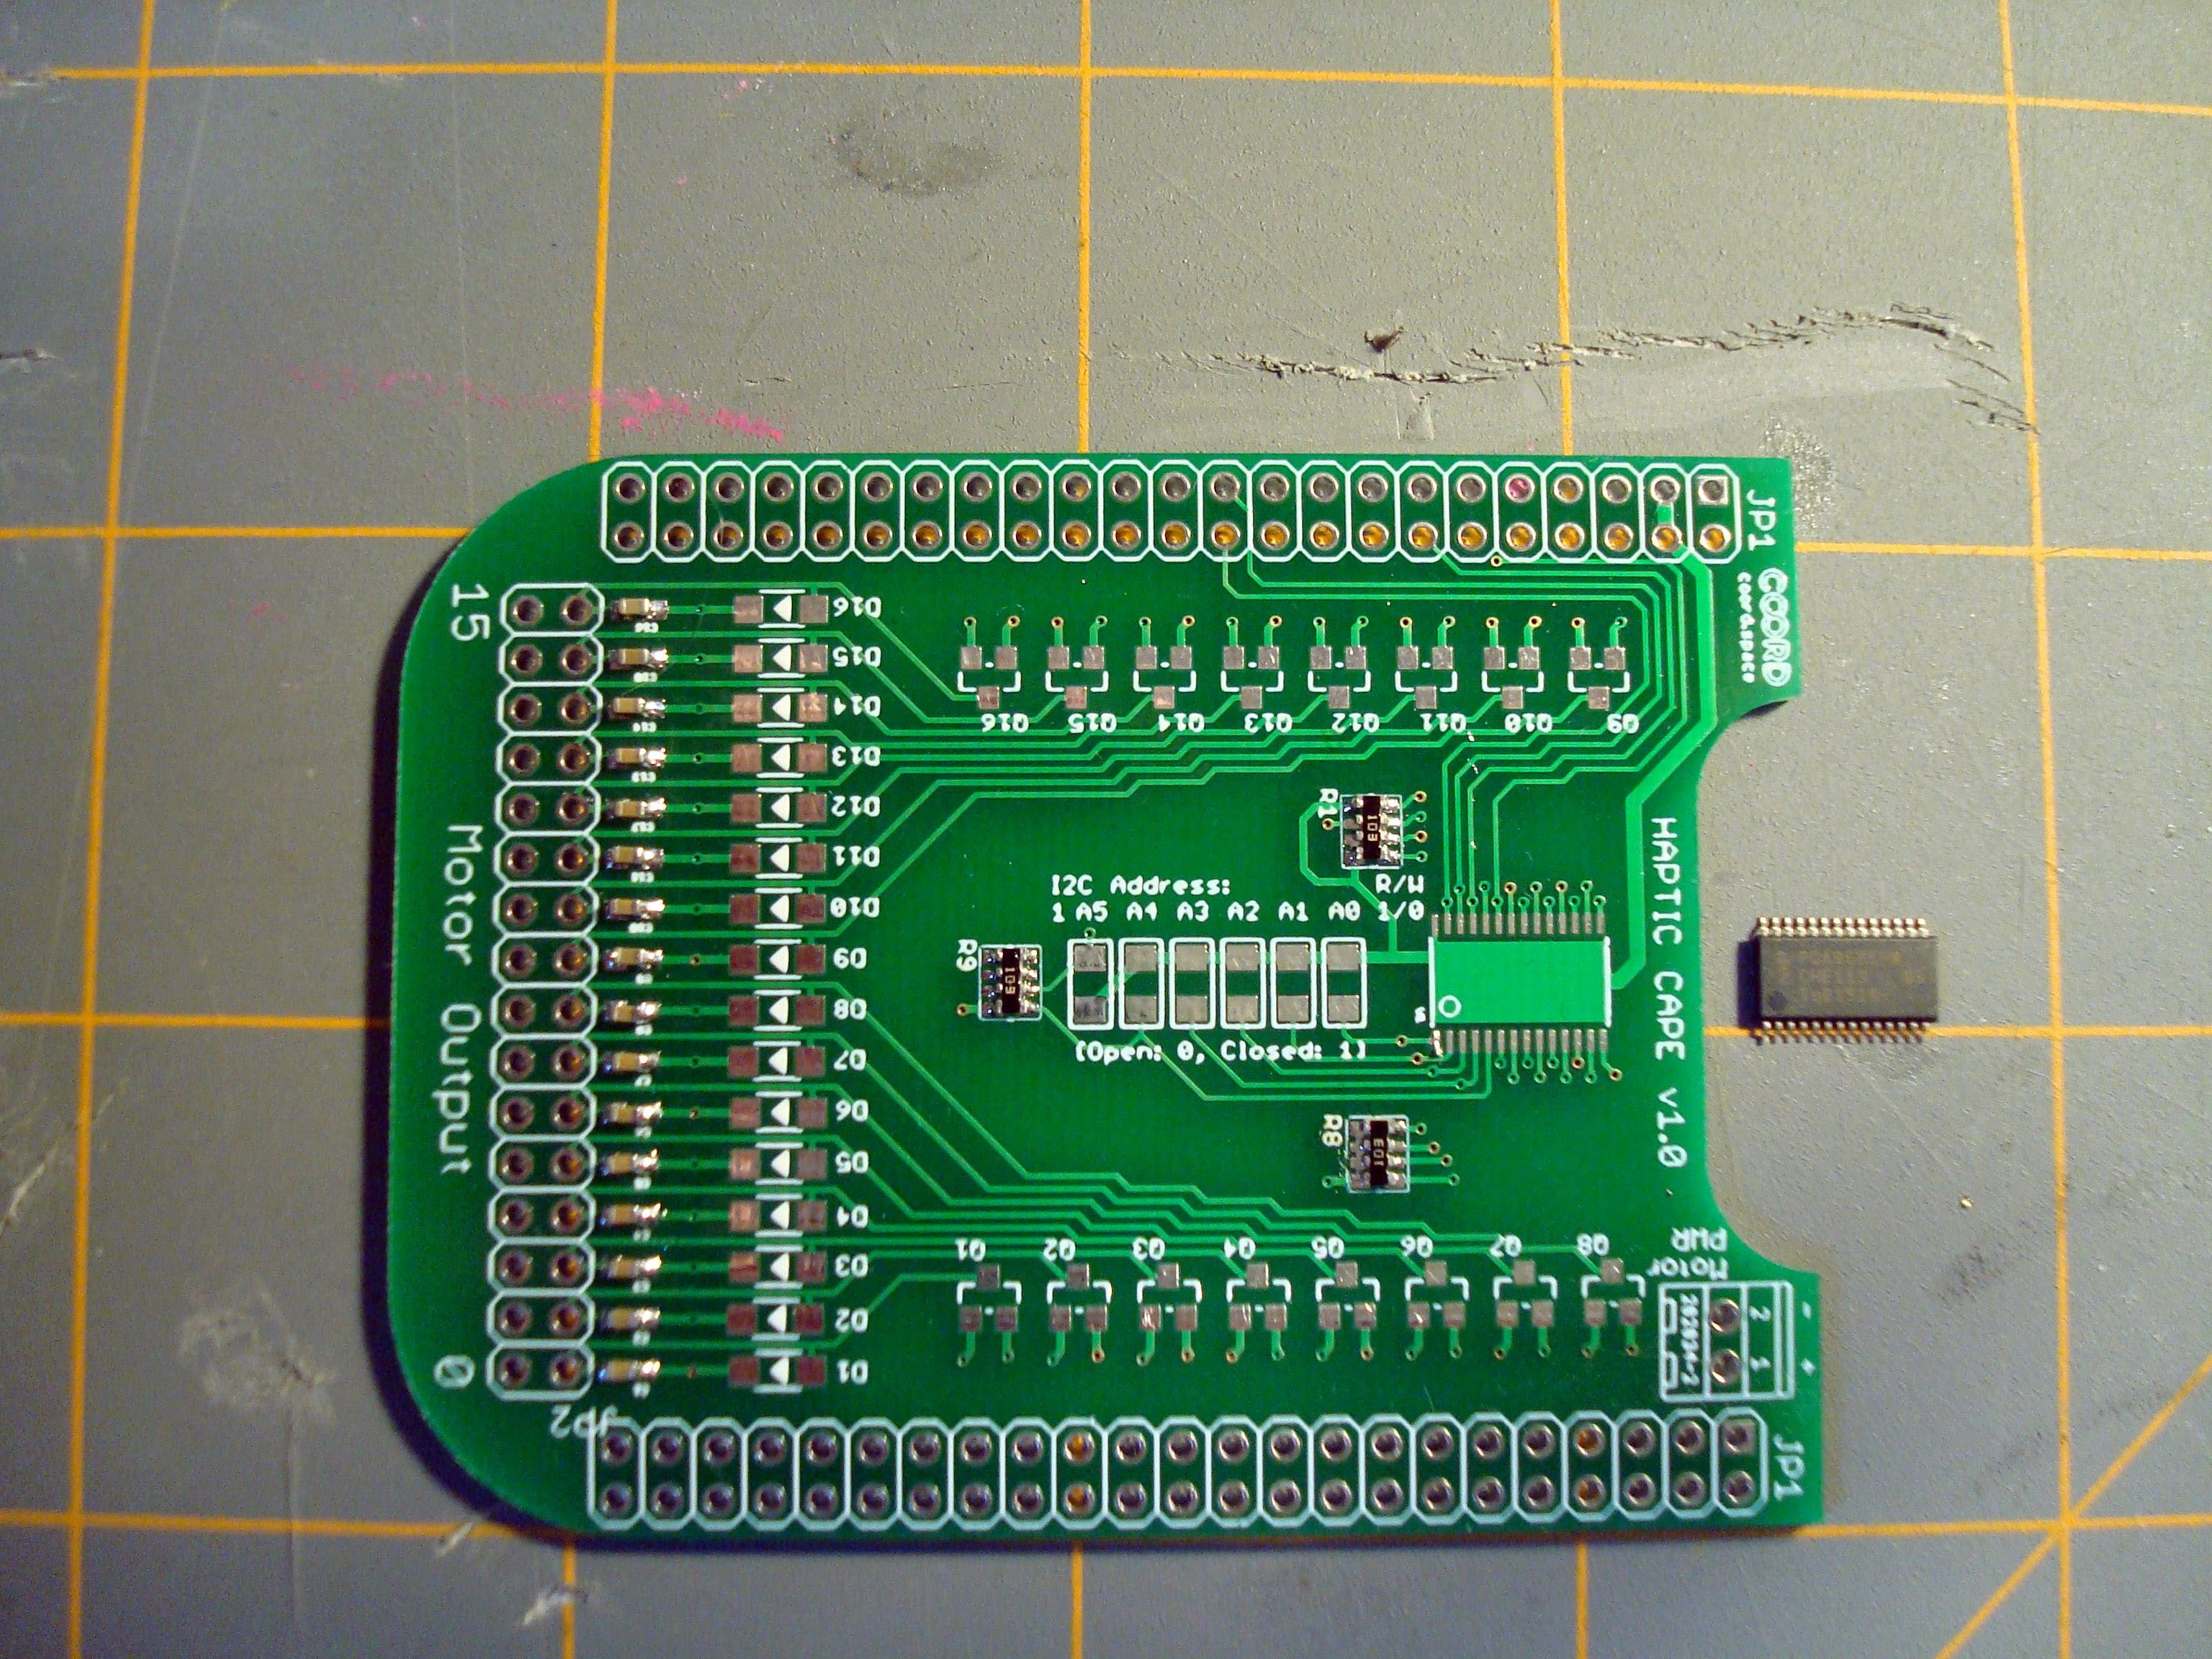 Now for the PCA9685 PWM controller. This is in a 28-TSSOP package. Pretty small but not anything to worry about!